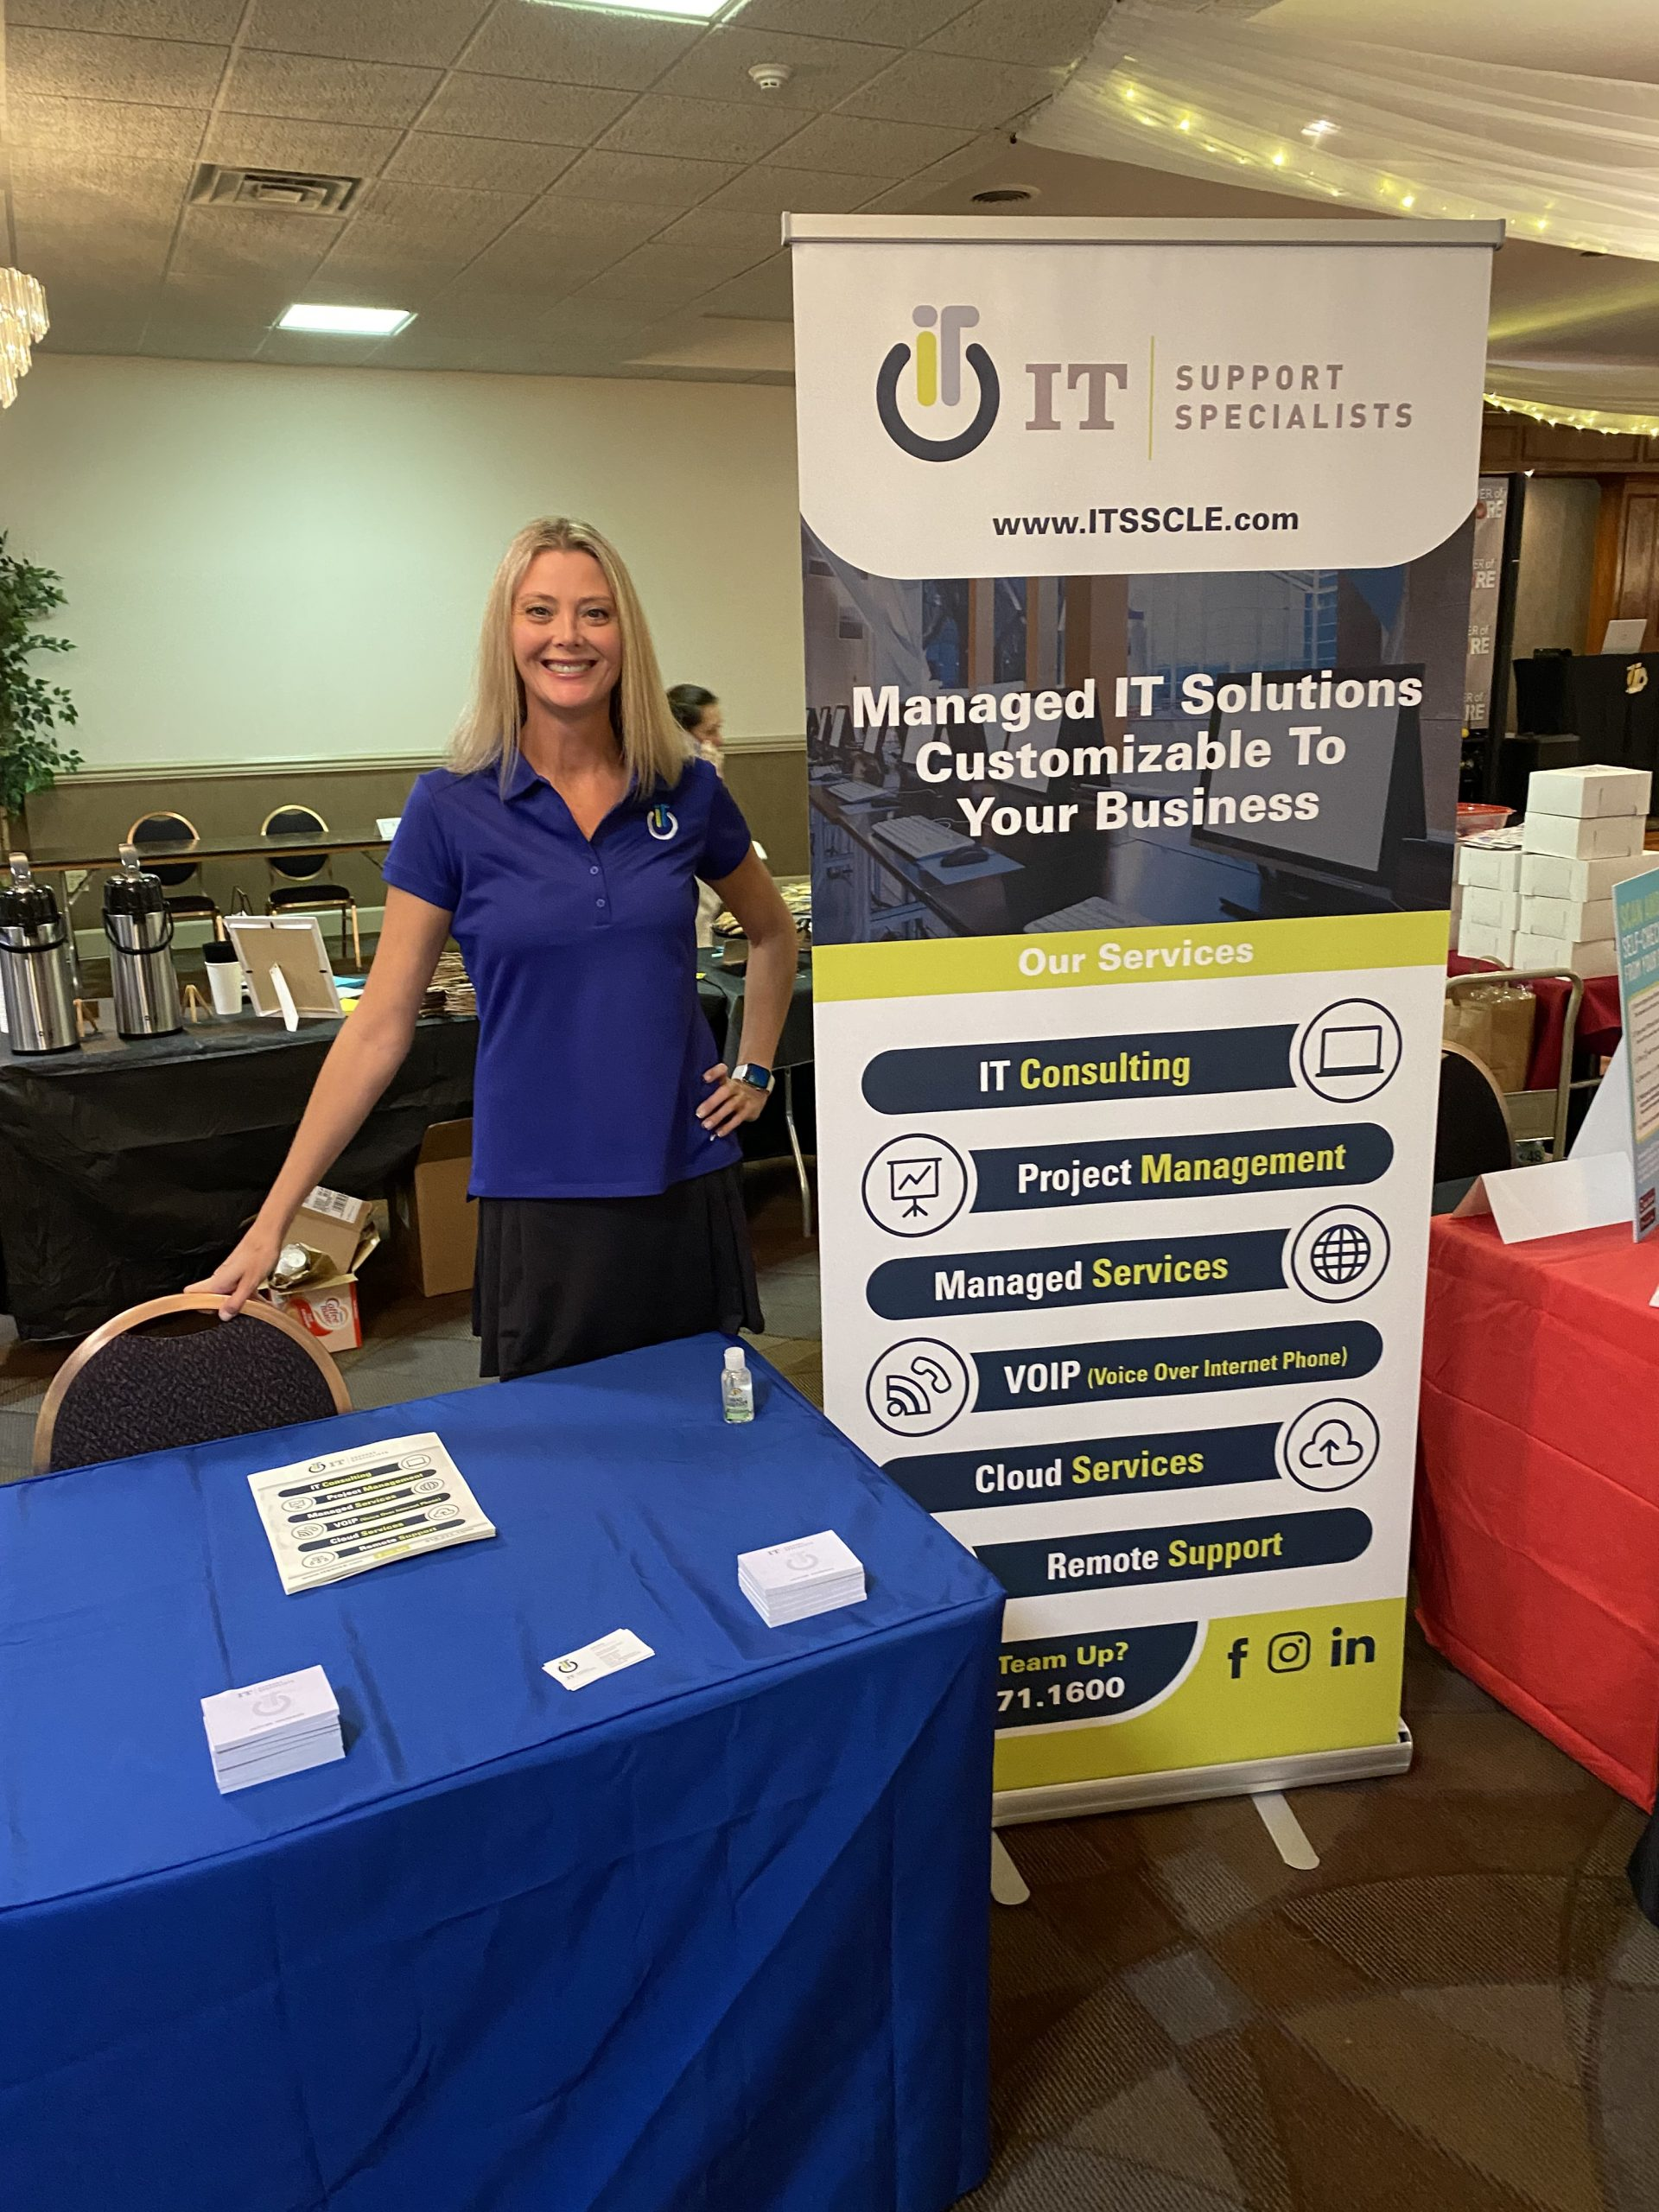 What a fantastic event the Power of More and North Coast Chamber of Commerce put on for the 8th Annual North Coast Business Expo. This Brand Ambassador was able to connect with vendors and attendees for IT Support Specialists Berea. Looking forward to the next event for ITSS in August!